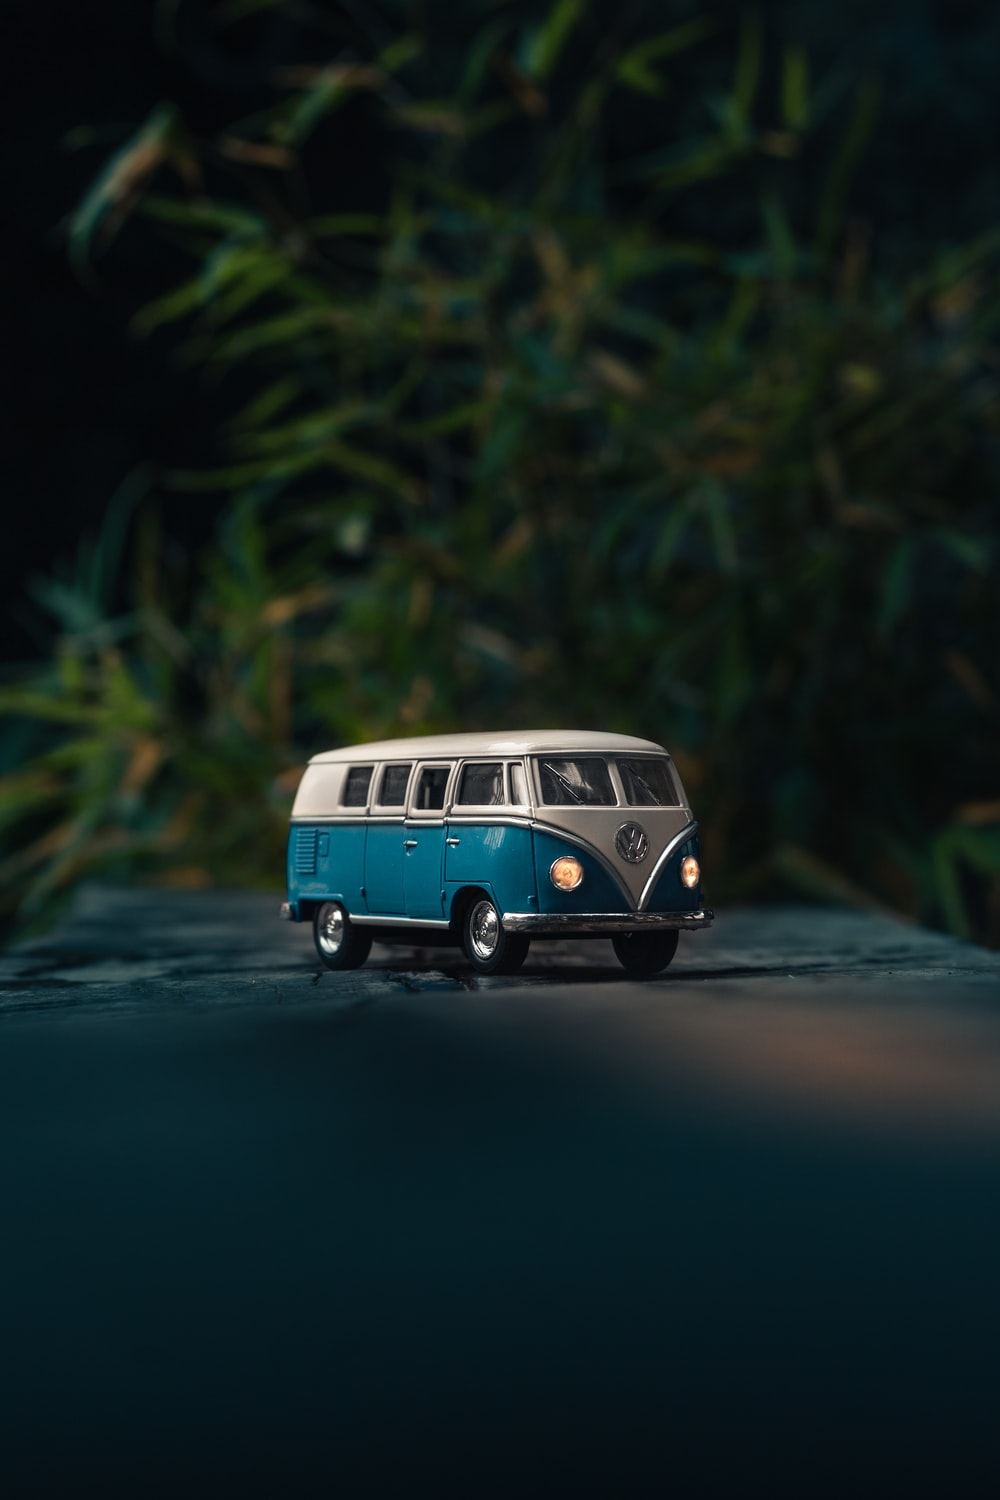 white and blue Volkswagen T1 van toy on gray surface